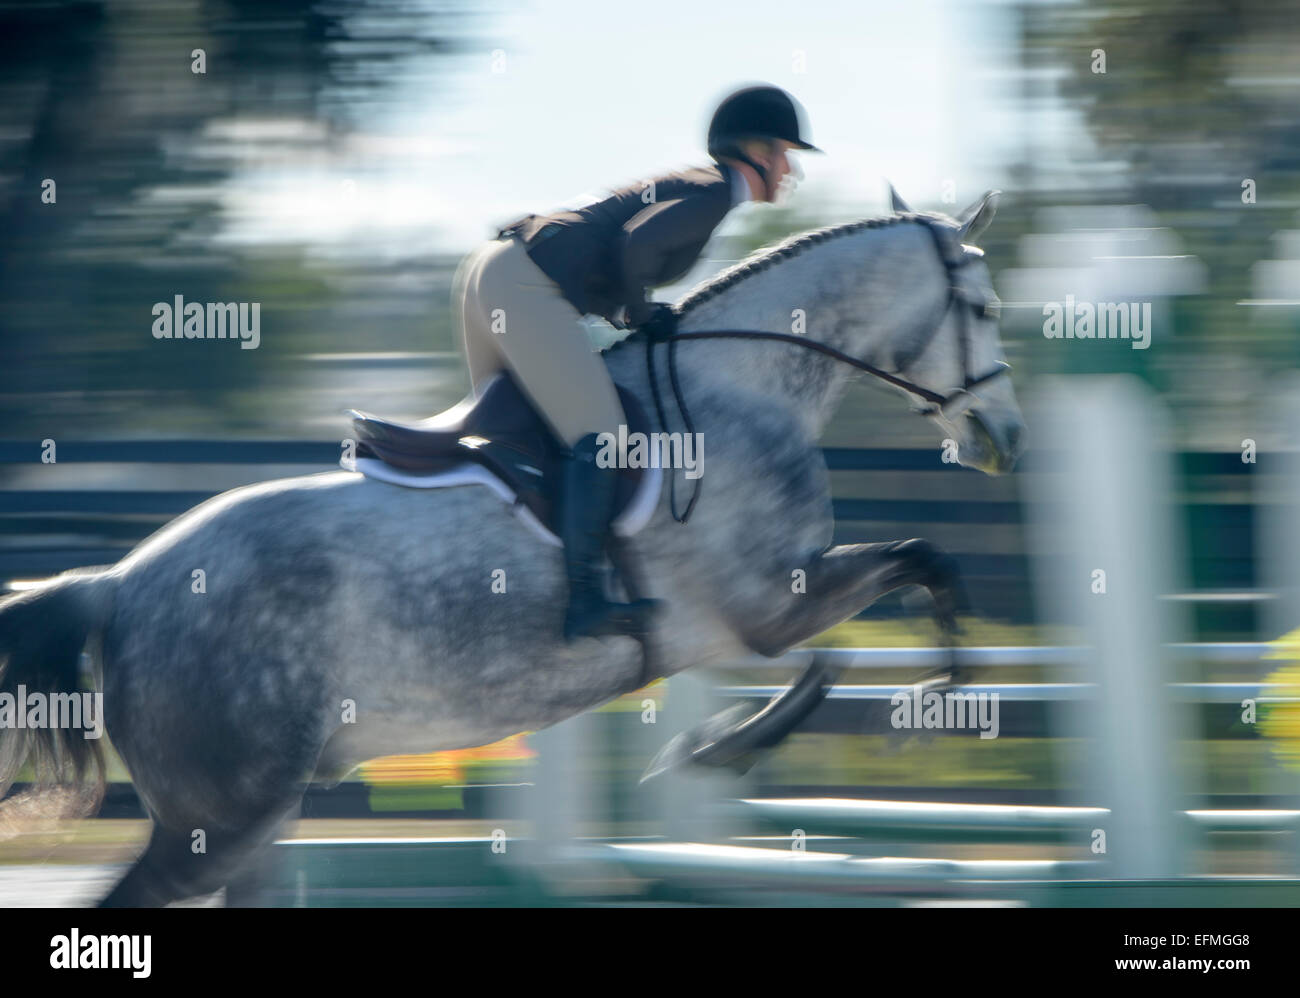 Show jumping competition - Stock Image